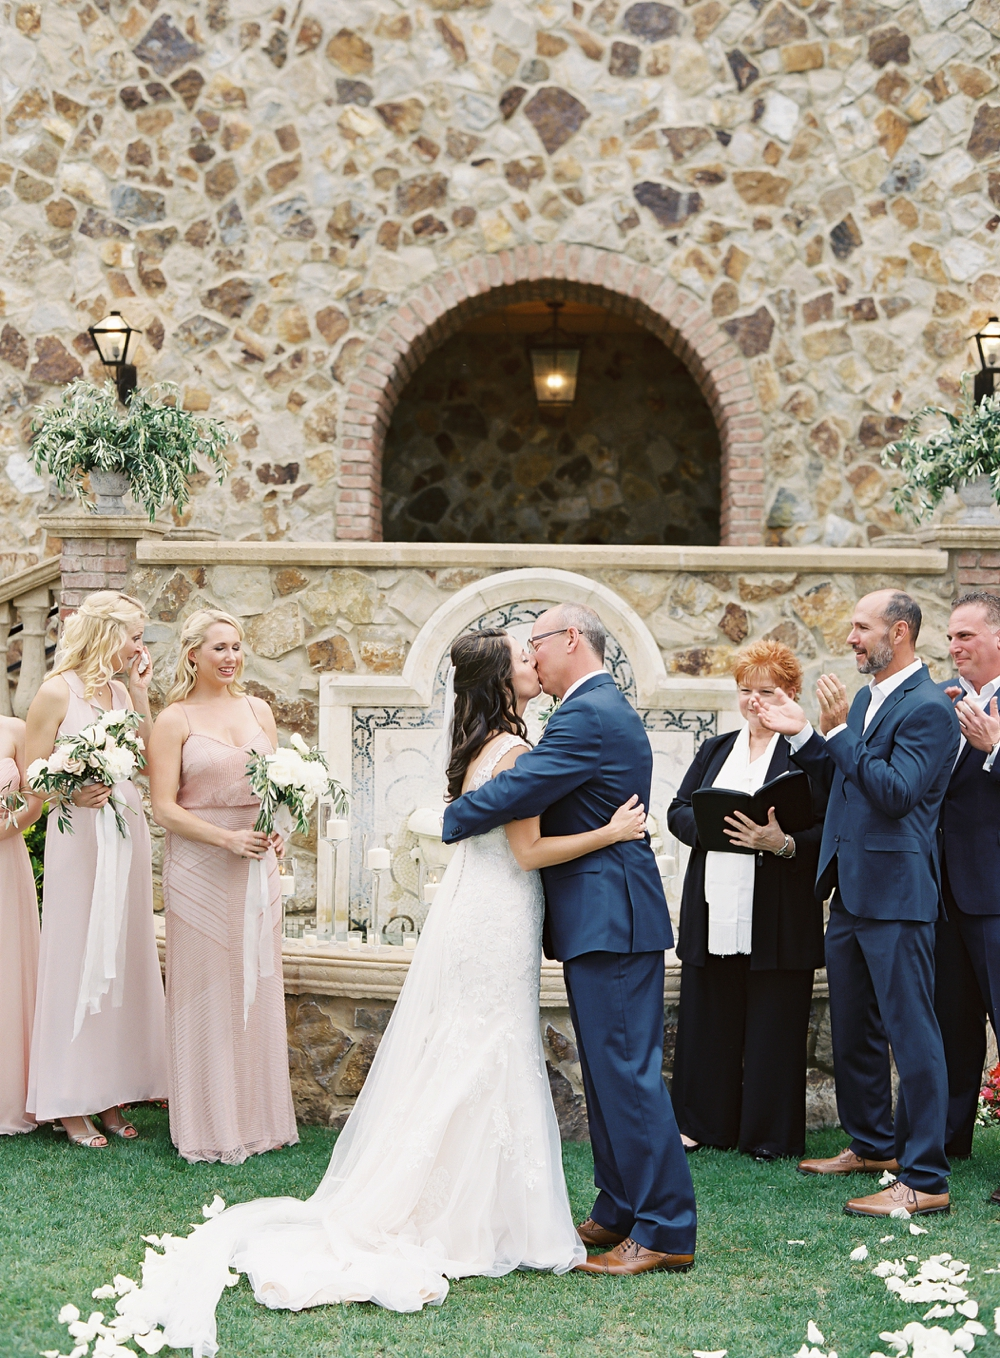 Vicki Grafton Photography - Fine Art Film Wedding Photographer - Bella Collina Wedding_0056.jpg